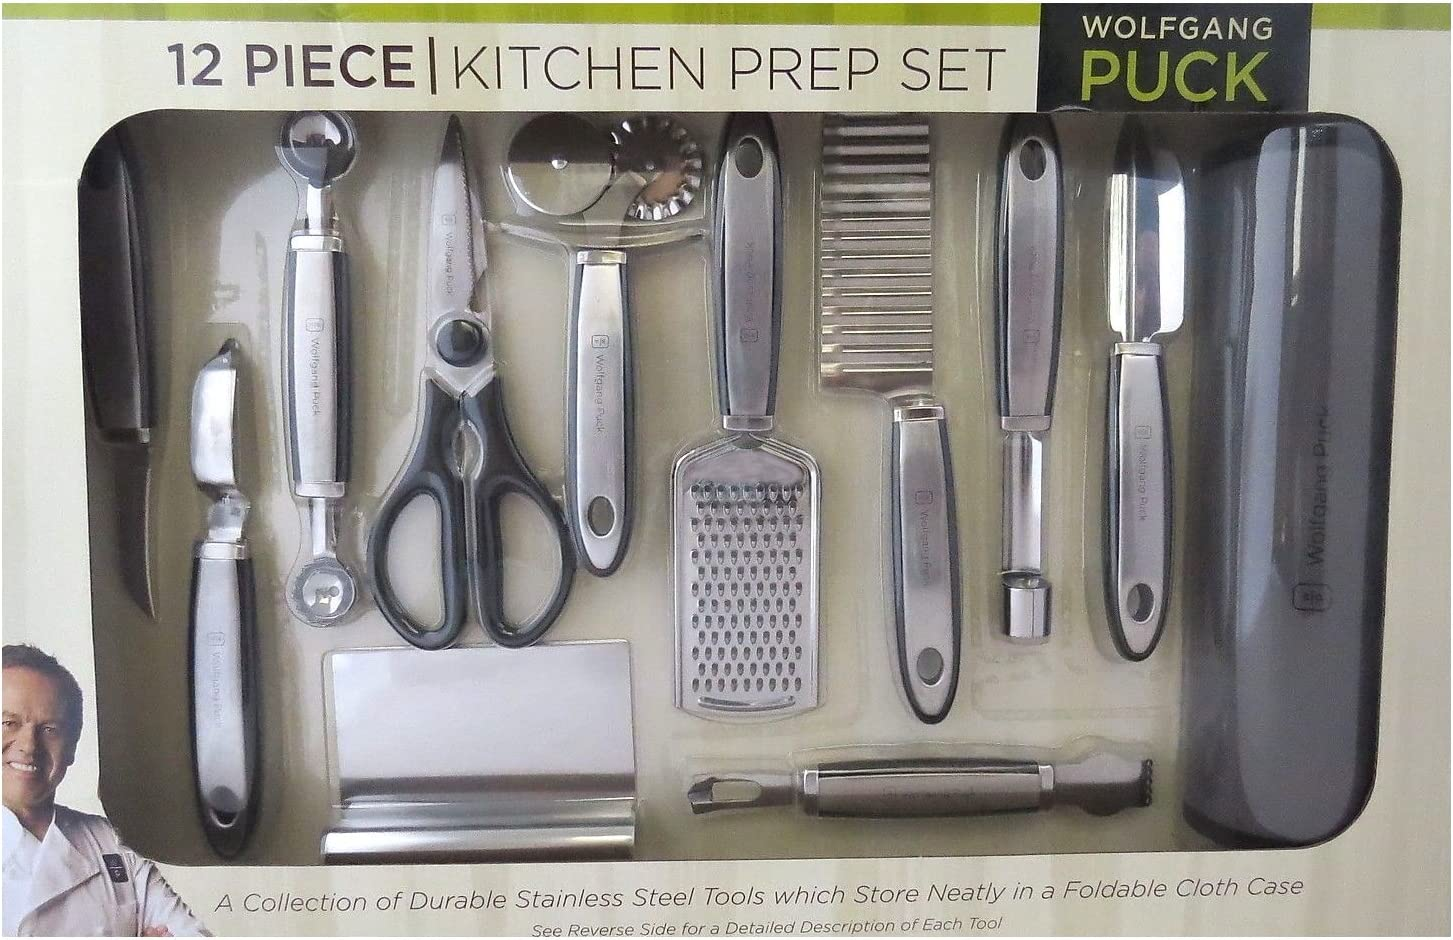 Wolfgang Puck 12 Piece Kitchen Prep Set Black